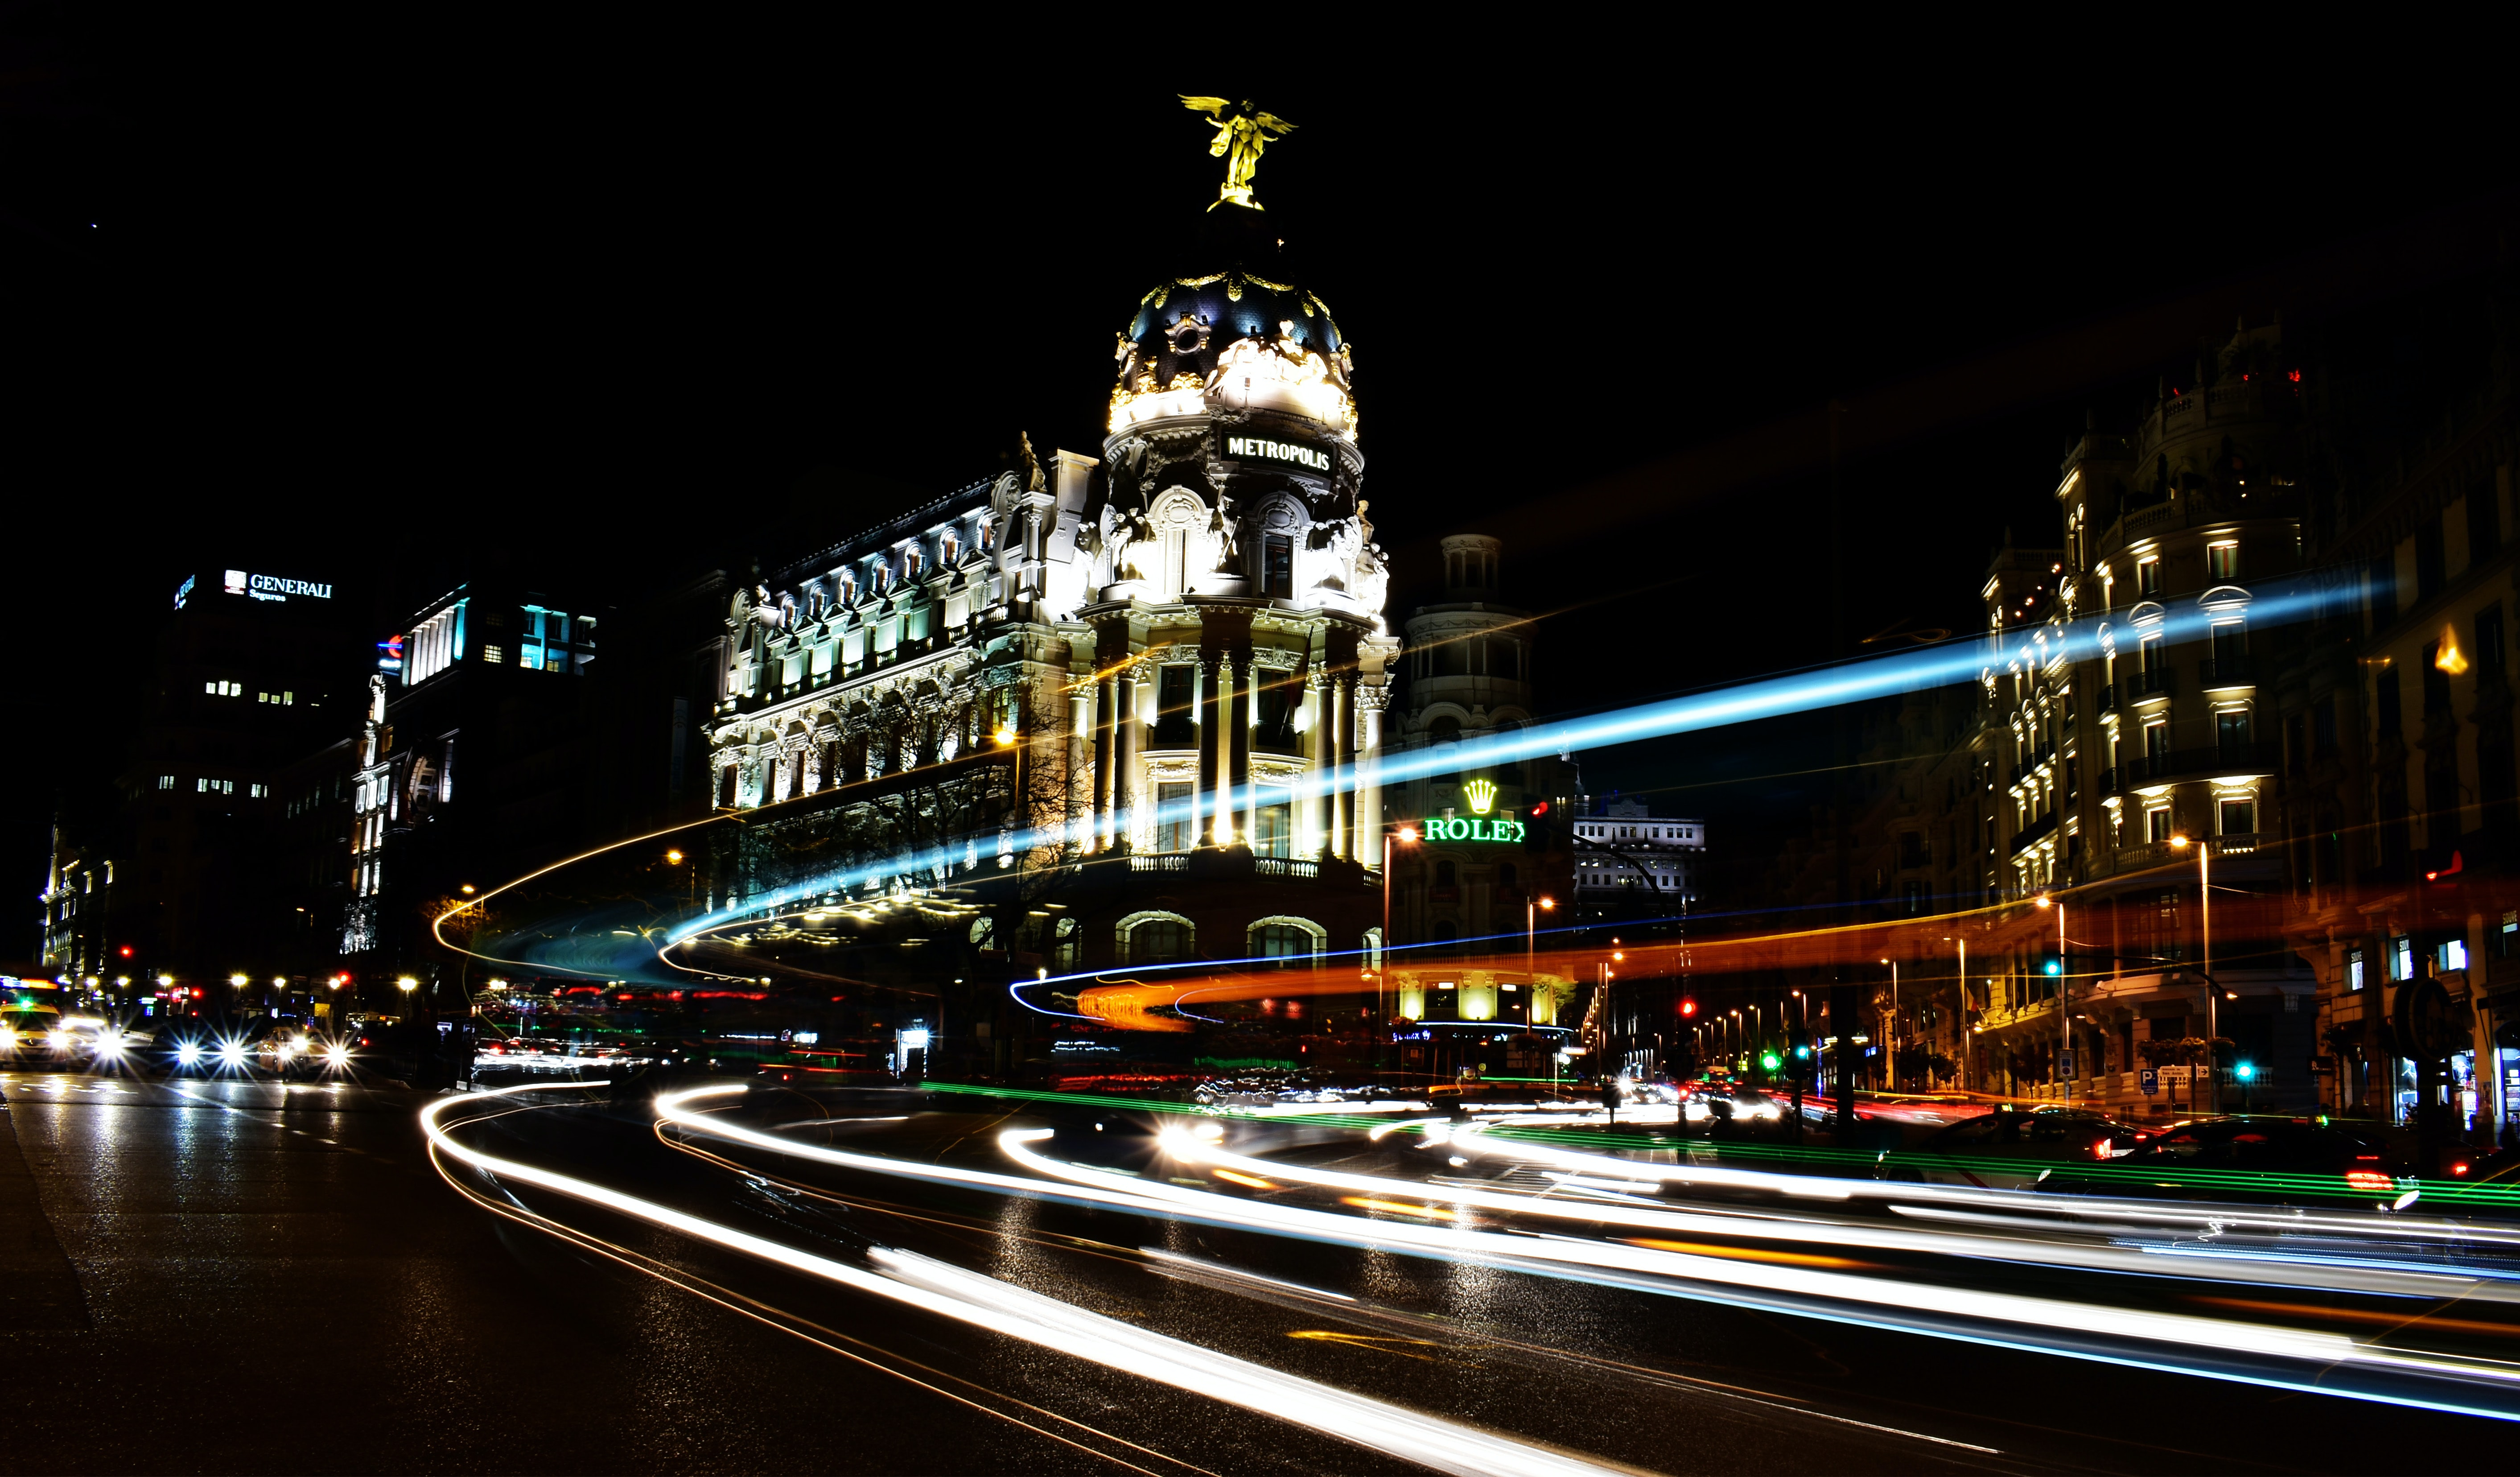 A dark shot of urban buildings lit up at night in Madrid